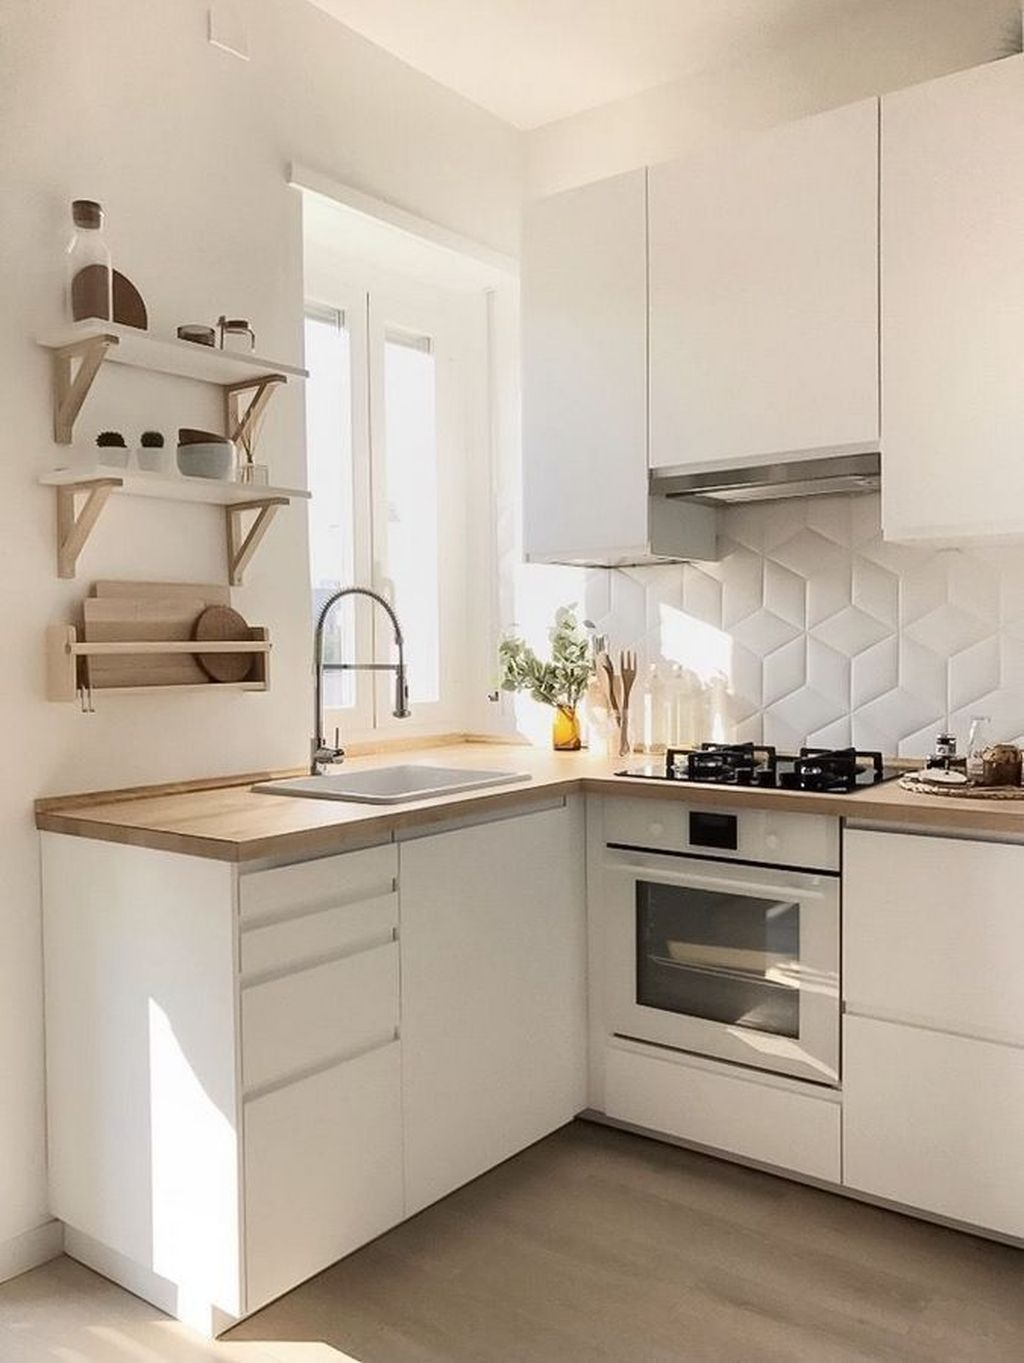 Totally Inspiring Small Kitchen Design Ideas For Your Small Home 26